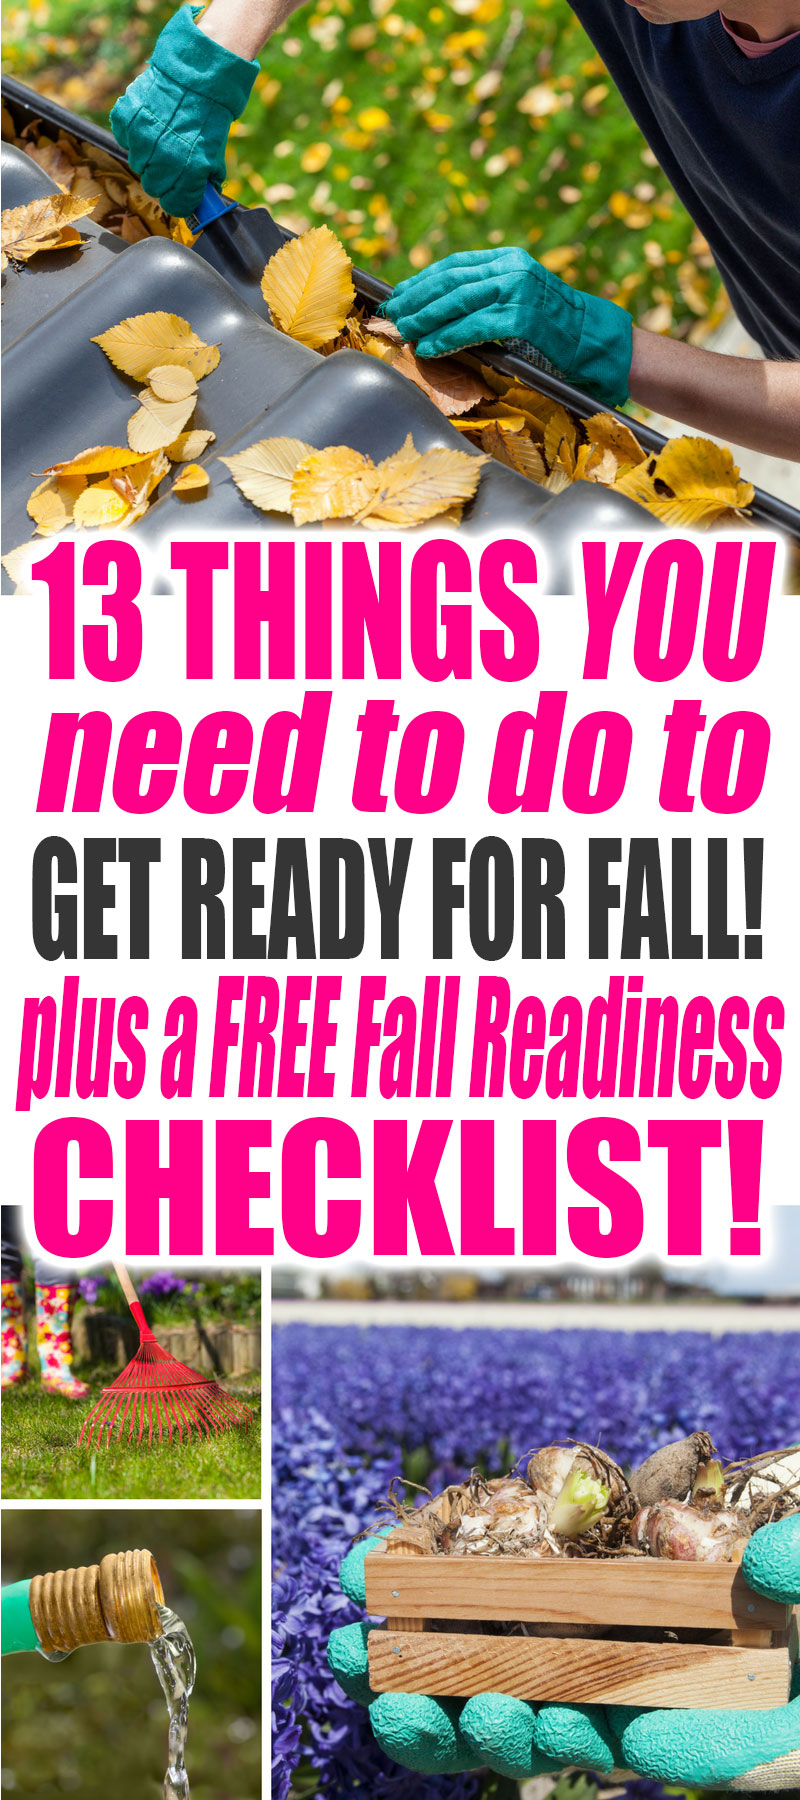 13 Things You Need to Do to Get Ready for Fall. Grab your FREE Fall Readiness Checklist Printable Now! | Fall | Organization | Preparation | Fall Ideas | Fall Organization Ideas | Fall Cleaning | Fall Cleaning Ideas | Fall Organization Tips | Fall Organization Ideas